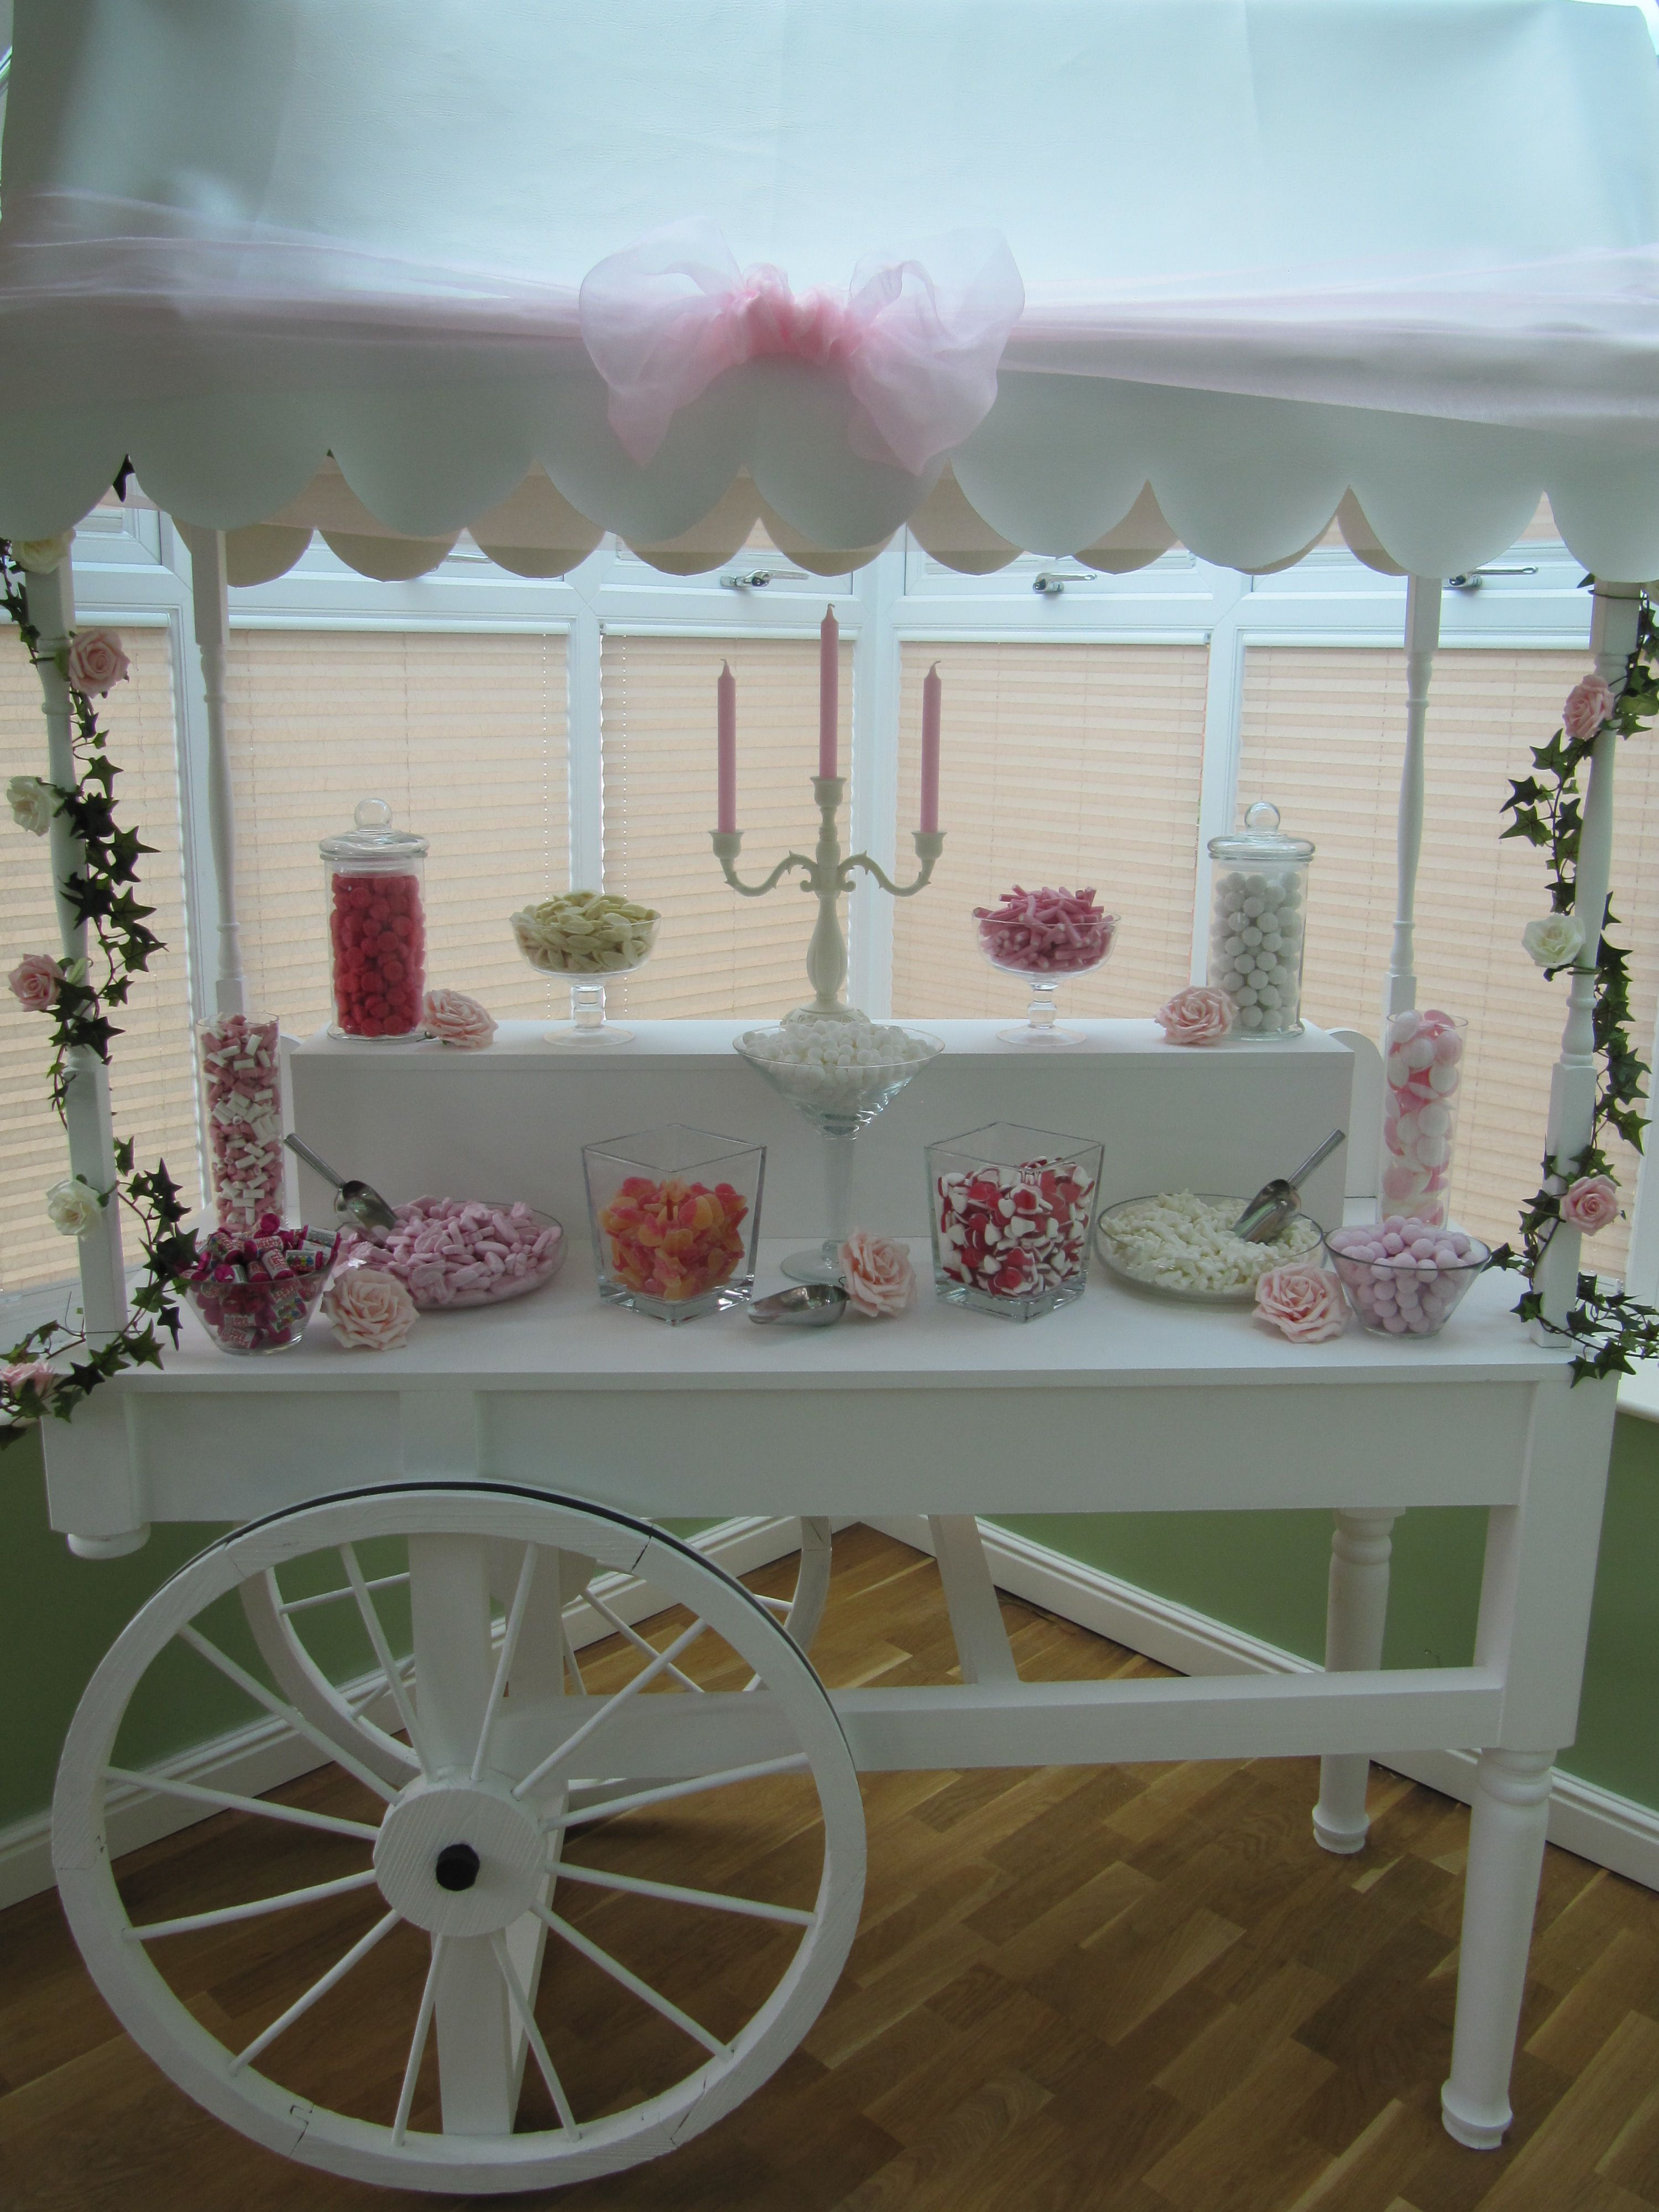 We Are Now Taking Bookings For Our Hand Crafted Wooden Candy Cart